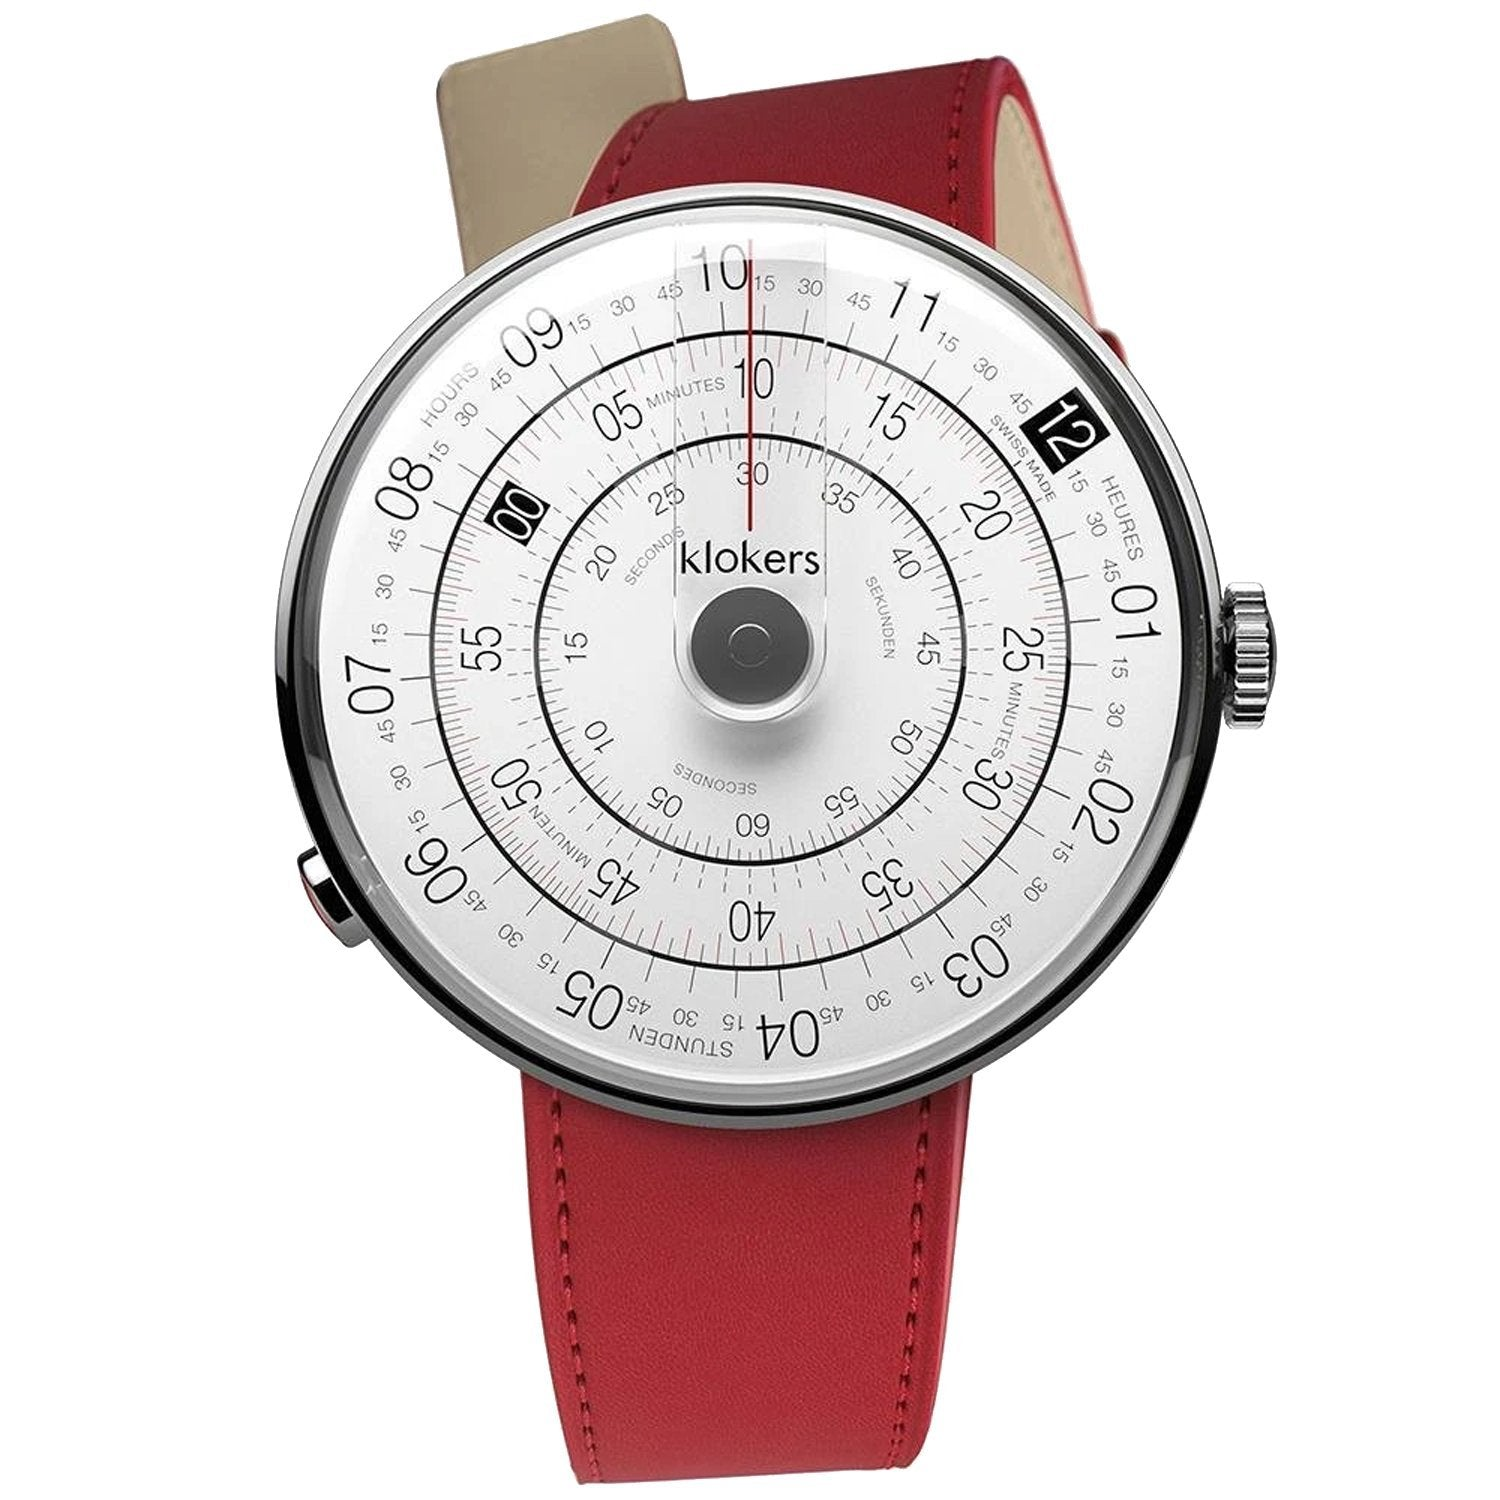 Klokers Heritage Red Leather - Watches & Crystals